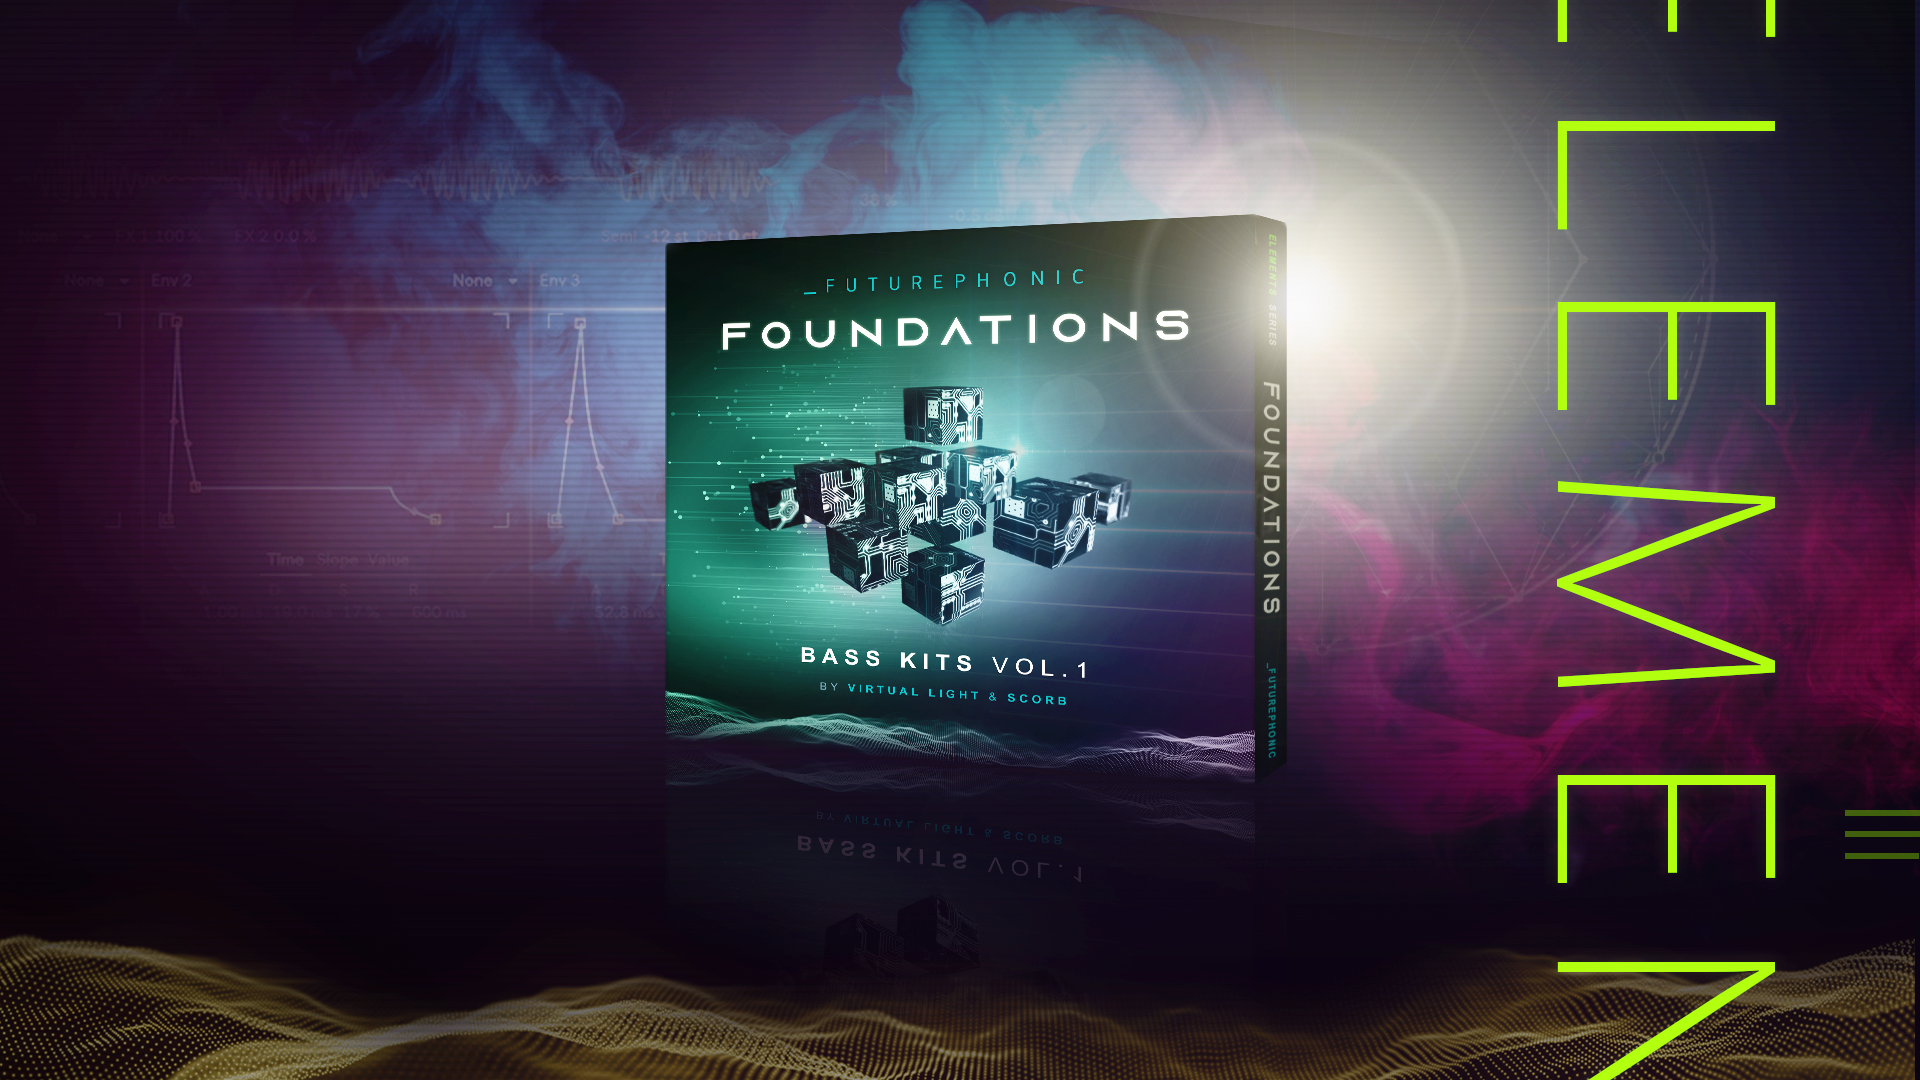 Foundations - Bass Kits Vol. 1 by Virtual Light and Scorb